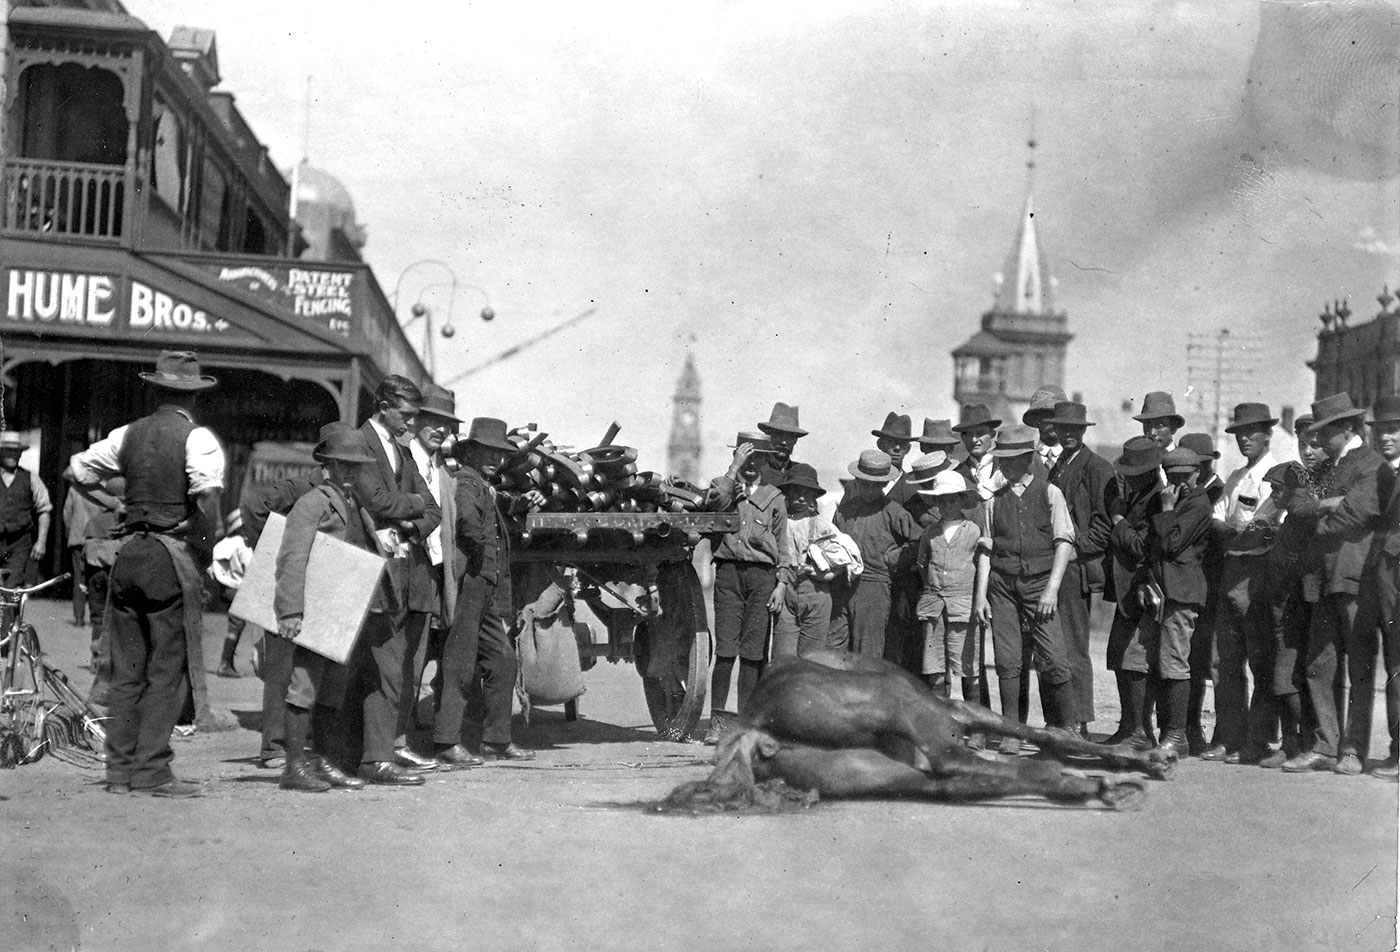 Black and white photo of a group o men and boys on a city street, looking down at a horse that lies on the road. - click to view larger image